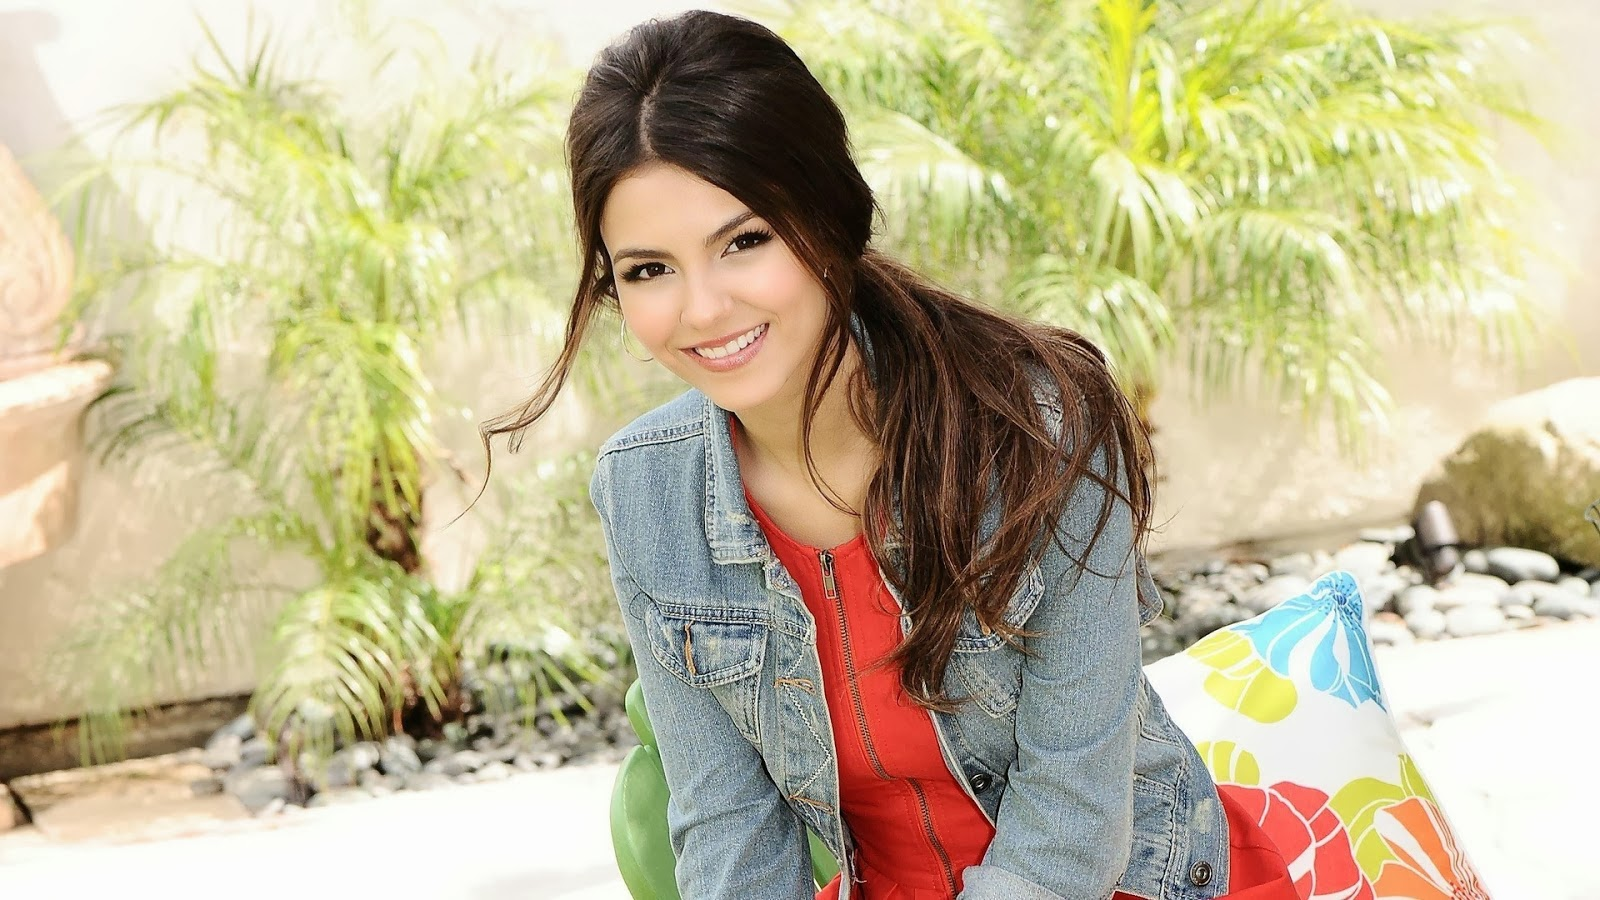 victoria justice hd wallpapers 1080p victoria justice hd wallpapers 1600x900